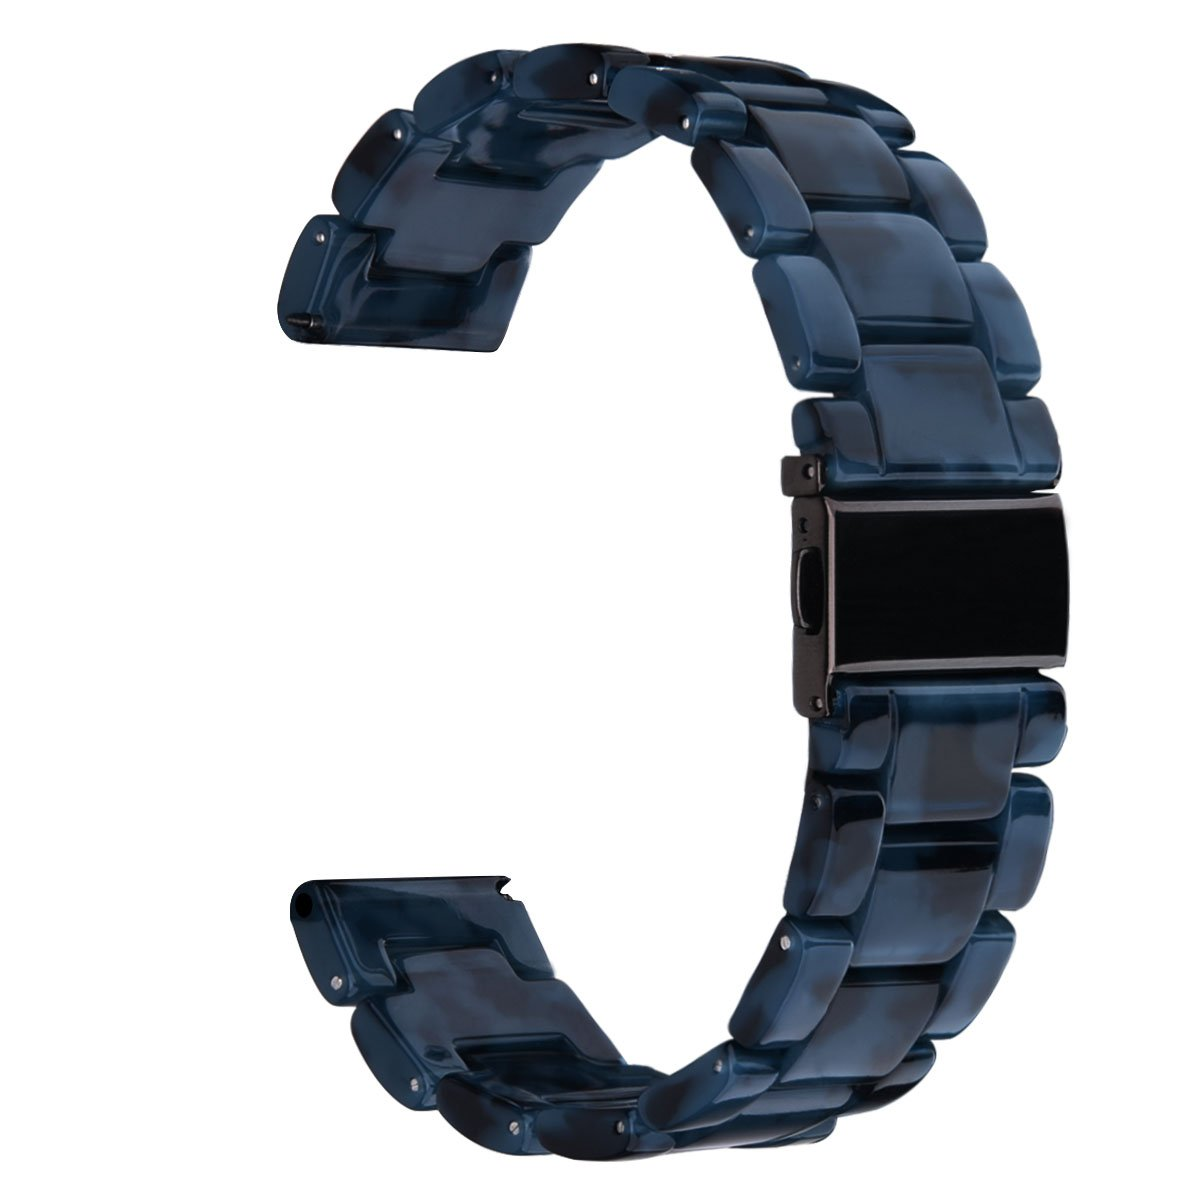 CAGOS Compatible Samsung Galaxy Watch (46mm) Bands/Gear S3 Frontier/Classic Bands - 22mm Fashion Resin Bracelet Strap with Metal Stainless Steel Buckle Replacement for Gear S3 Smartwatch (Navy-Tone)